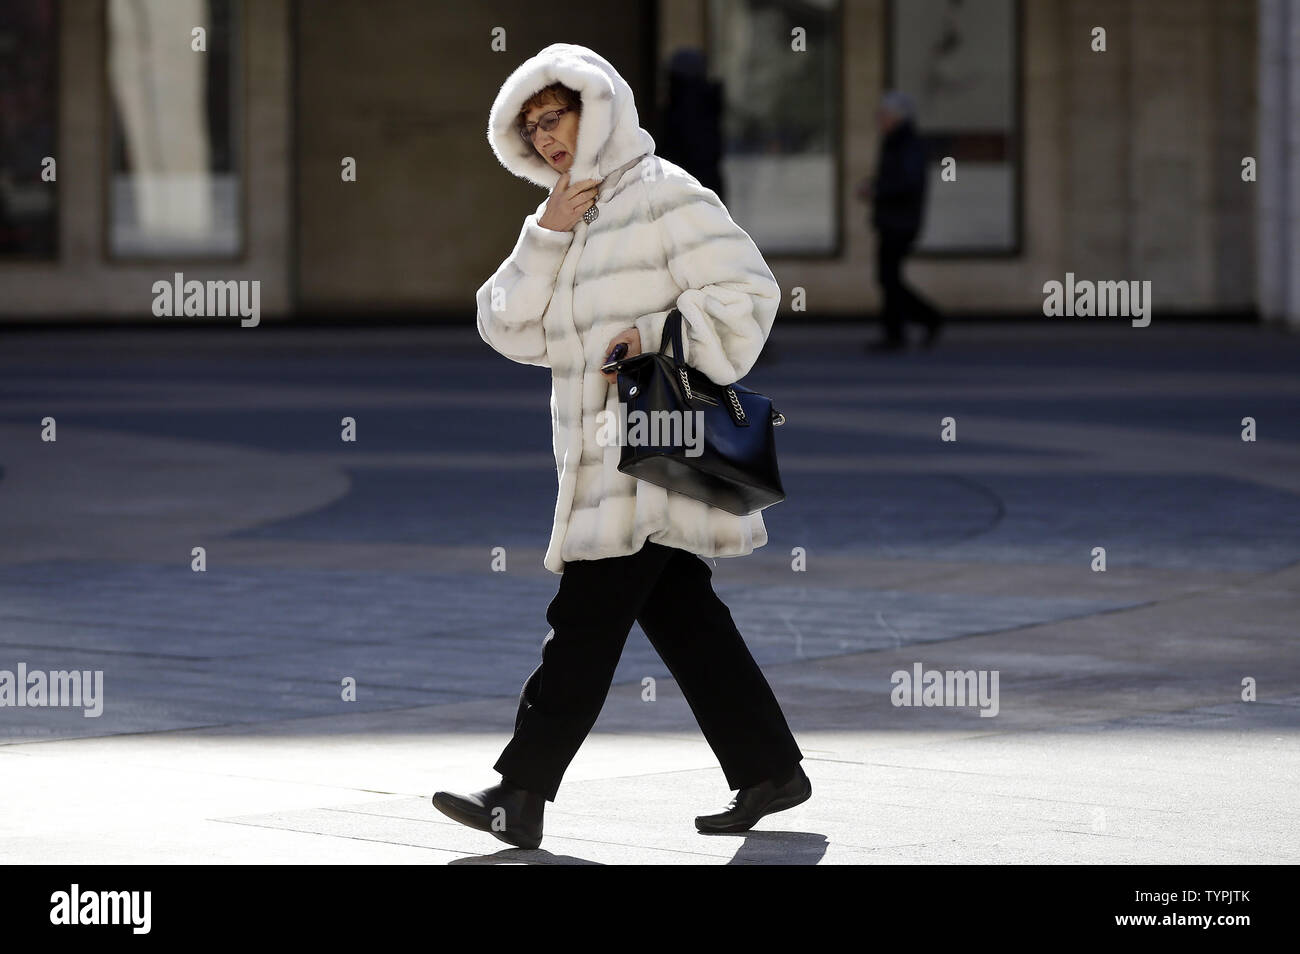 A woman bundled up for freezing cold weather walks around the grounds at Lincoln Center during the week of Mercedes-Benz Fashion Week Fall 2015 in New York City on February 13, 2015. Temperatures fell into the teens in New York with snow expected tomorrow through Sunday.      Photo by John Angelillo/UPI - Stock Image